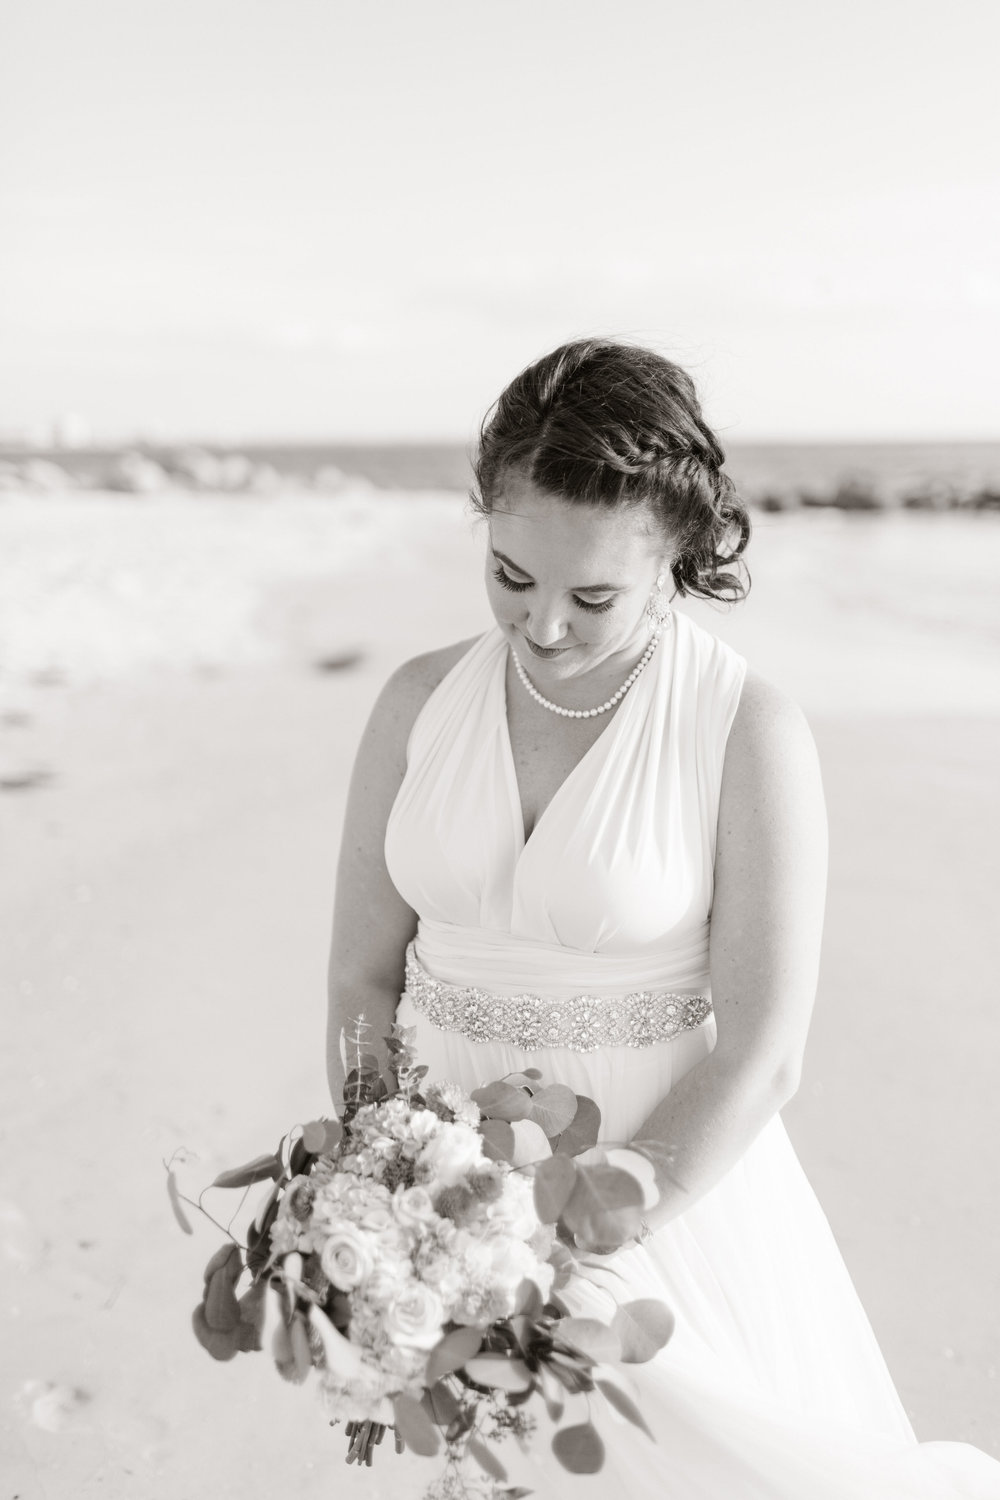 Beltran_Treasure_Island_Elopement_Tampa_Wedding_082-1.jpg